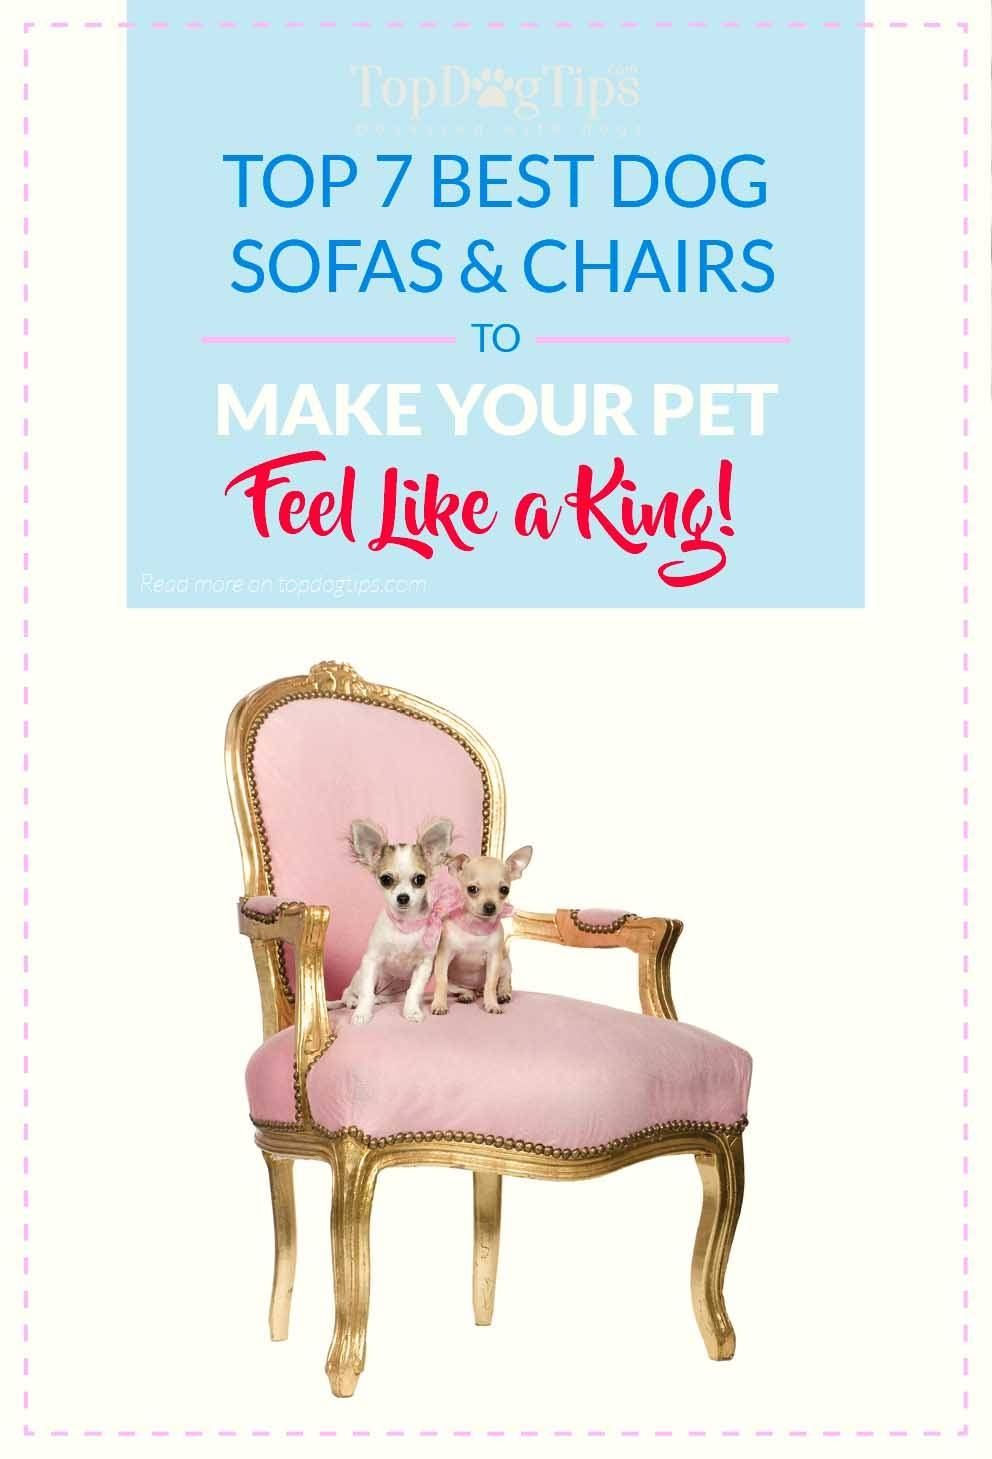 Top 7 Best Dog Sofas And Chairs For Stylish Home Decor In 2017 with regard to Dog Sofas And Chairs (Image 13 of 15)